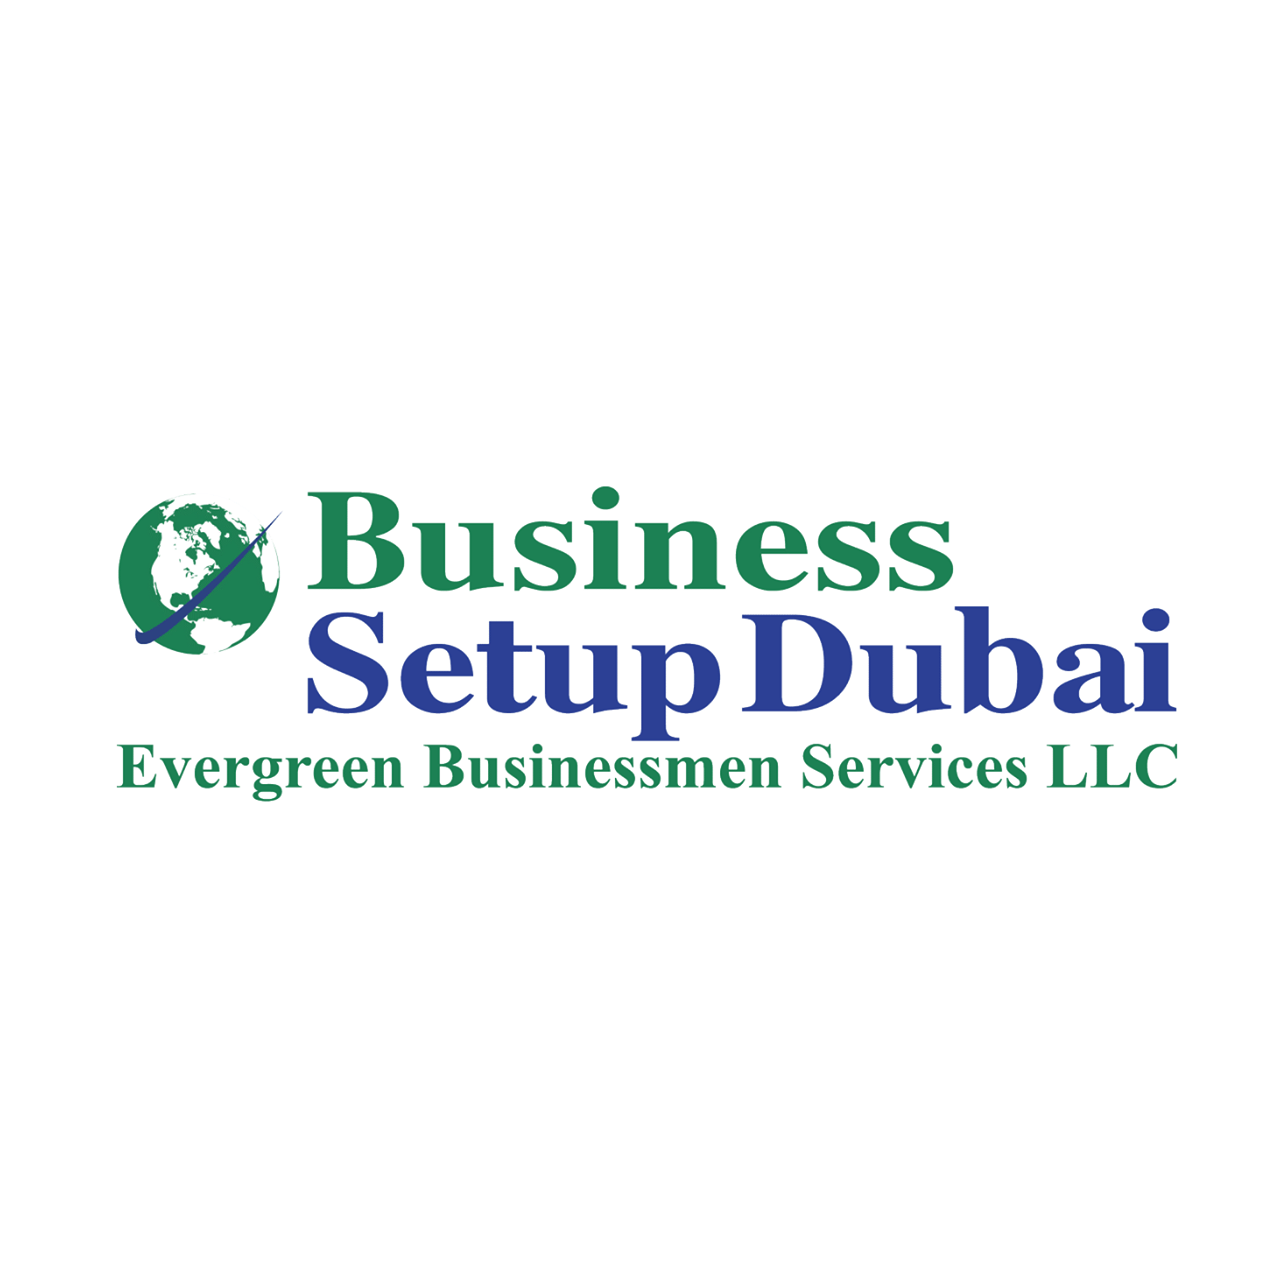 Business Setup Dubai - Evergreen Businessmen Services LLC-UAEplusplus.com